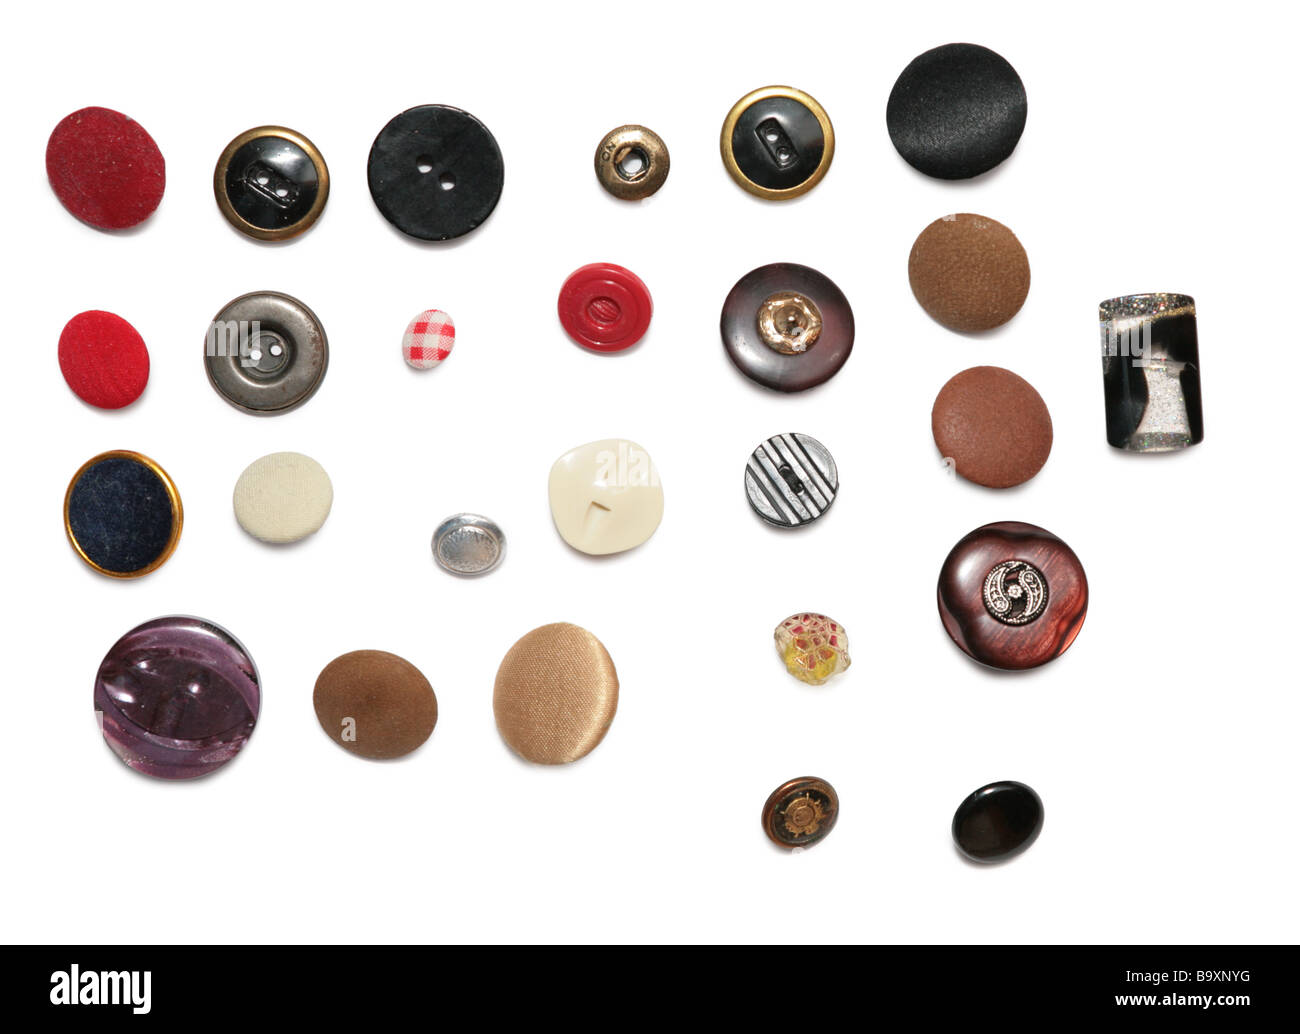 Rows of buttons - Stock Image